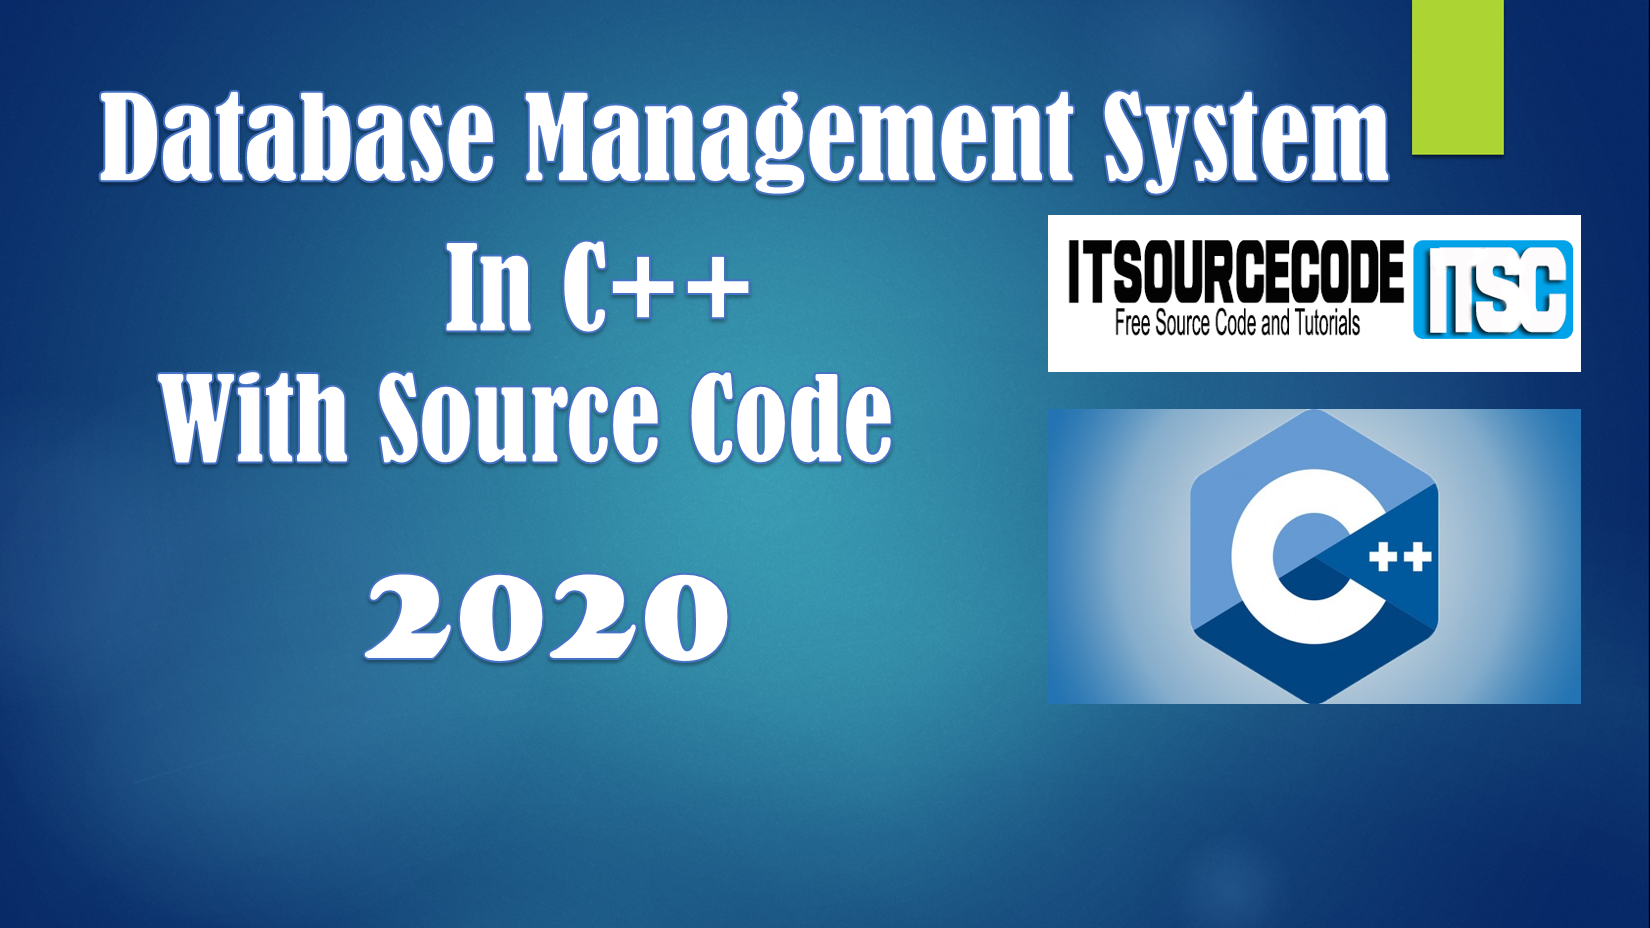 Database Management System In C++